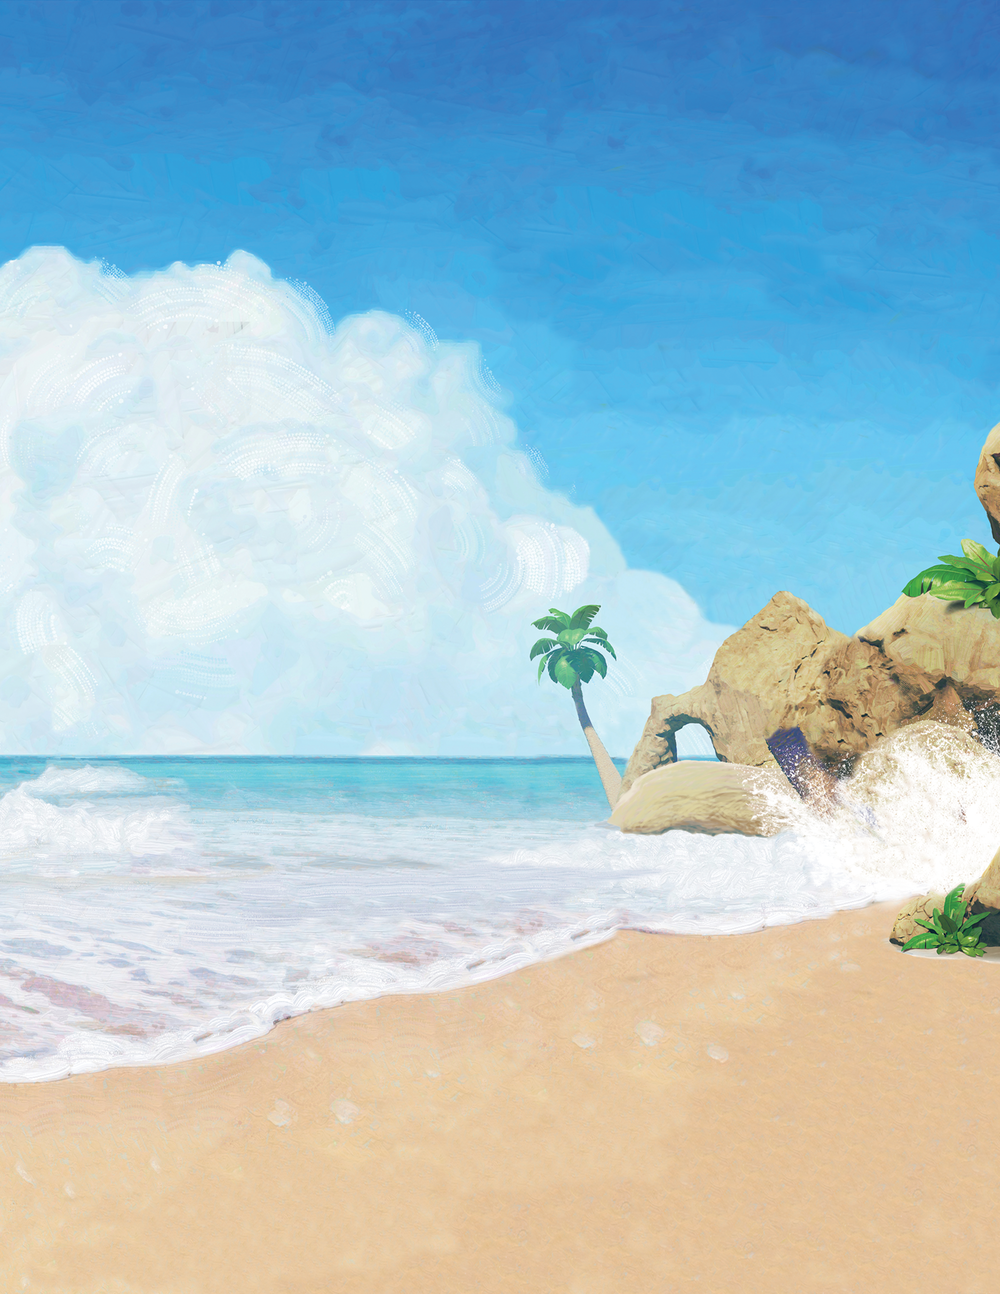 Background_Beach6_LR.png